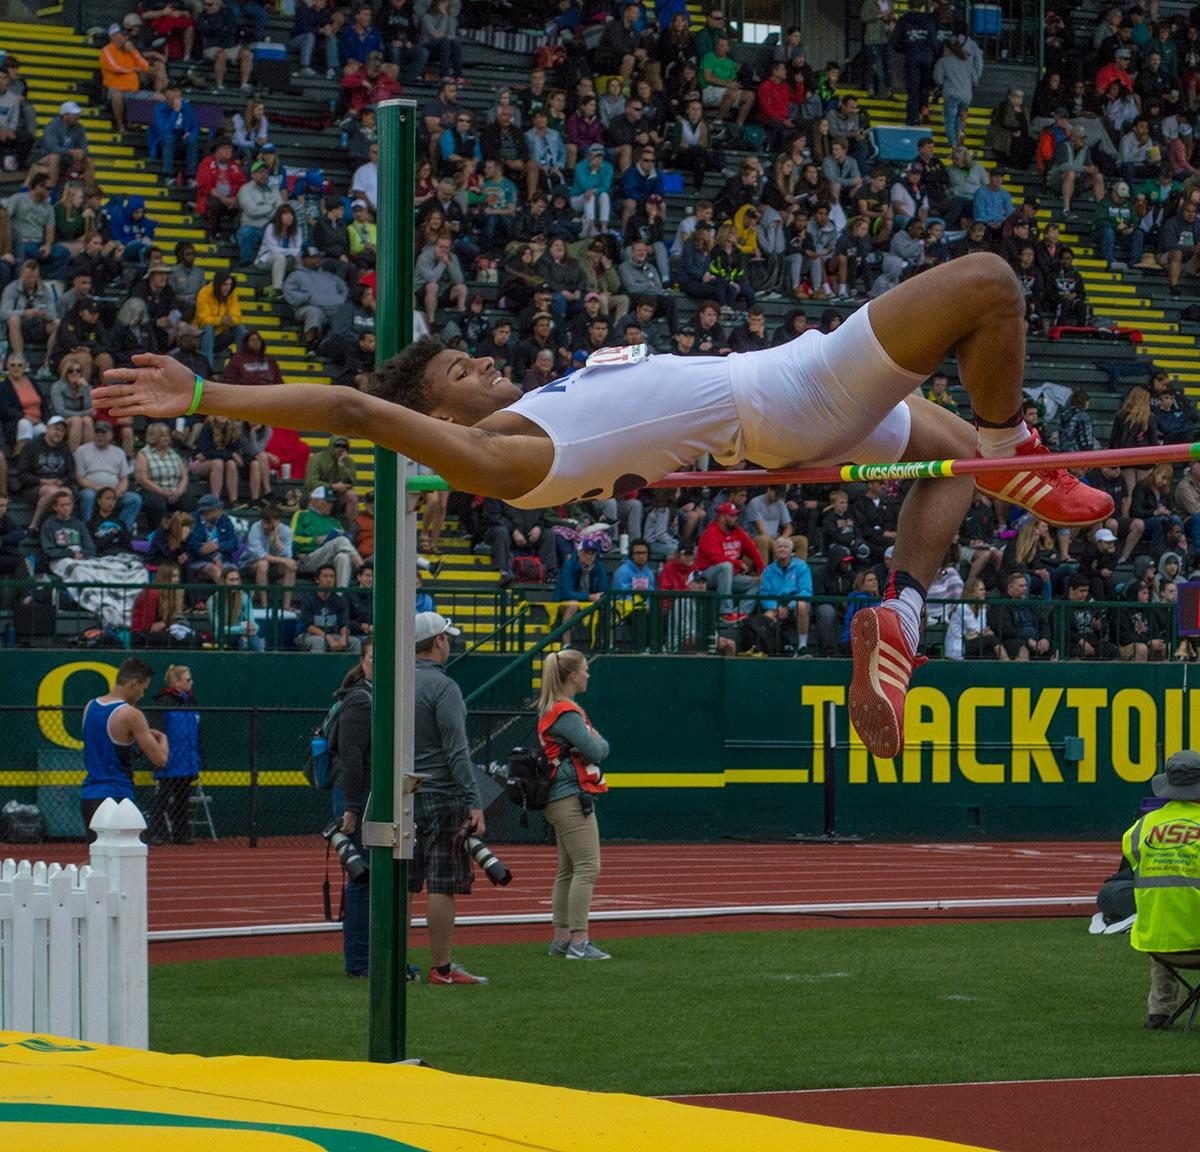 Tyler Hanrahan jumps to victory; clearing the height of 6-05.00, he wins the 4A Boys High Jump event at the OSAA Track and Field Championships at Hayward Field. Photo by Emily Gonzalez, Oregon News Lab.